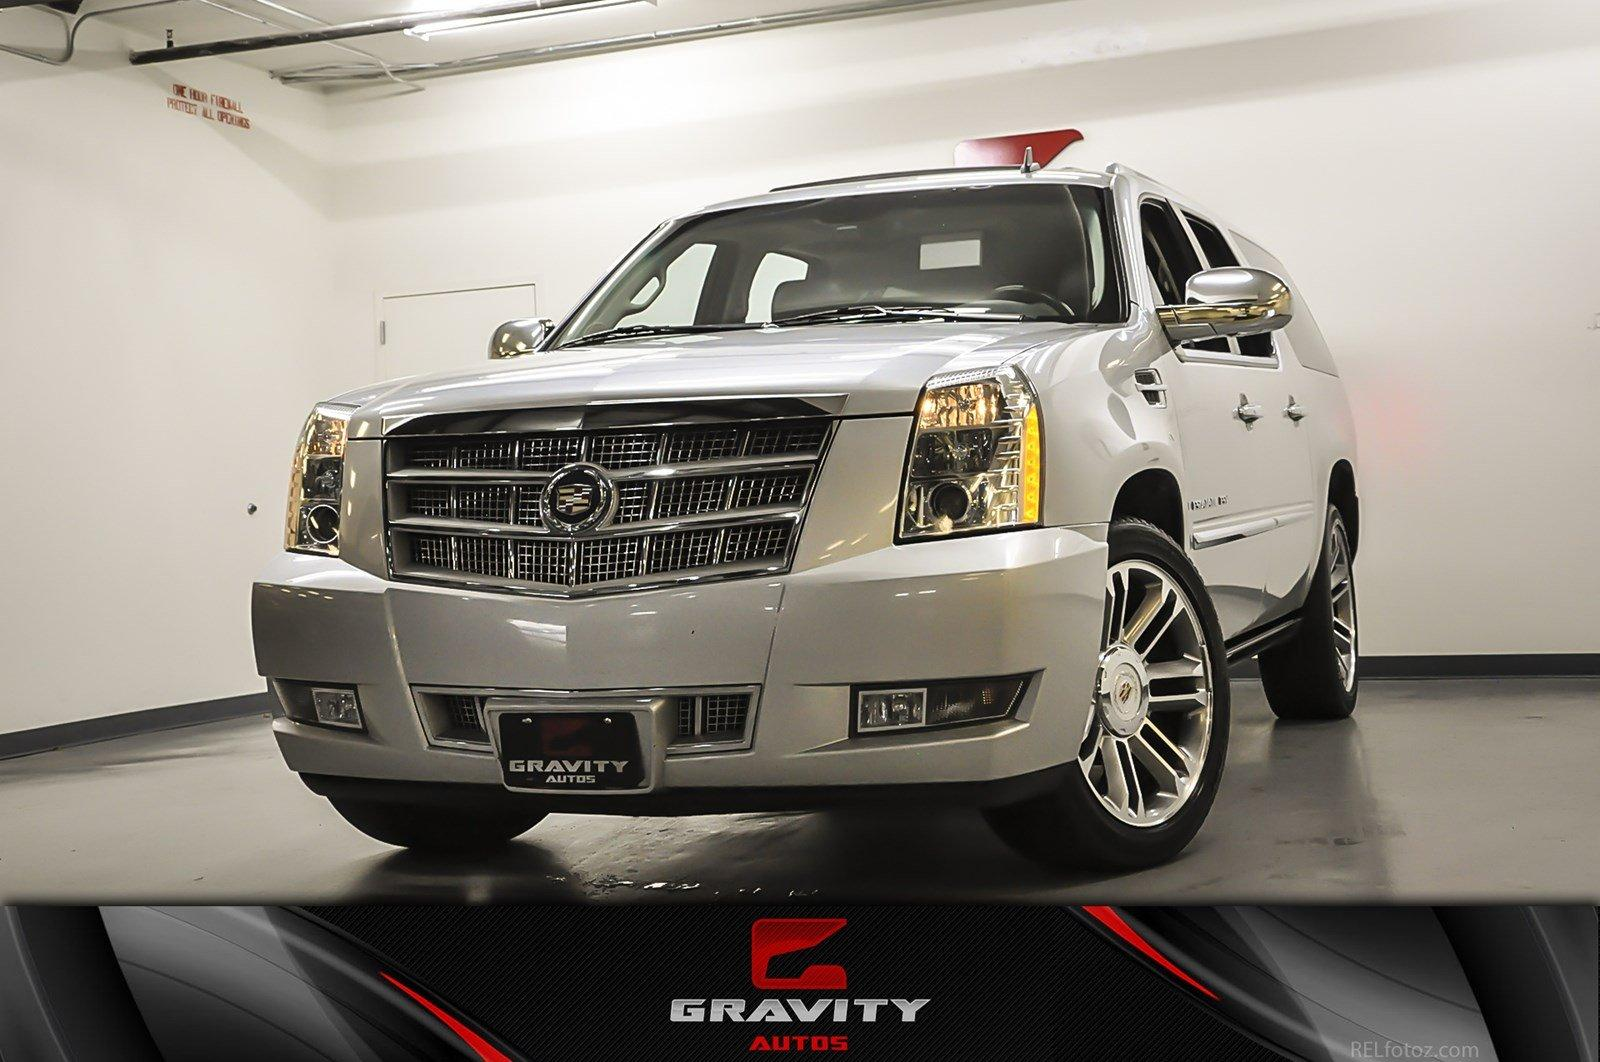 info ext escalade gm blog pictures authority wiki premium cadillac